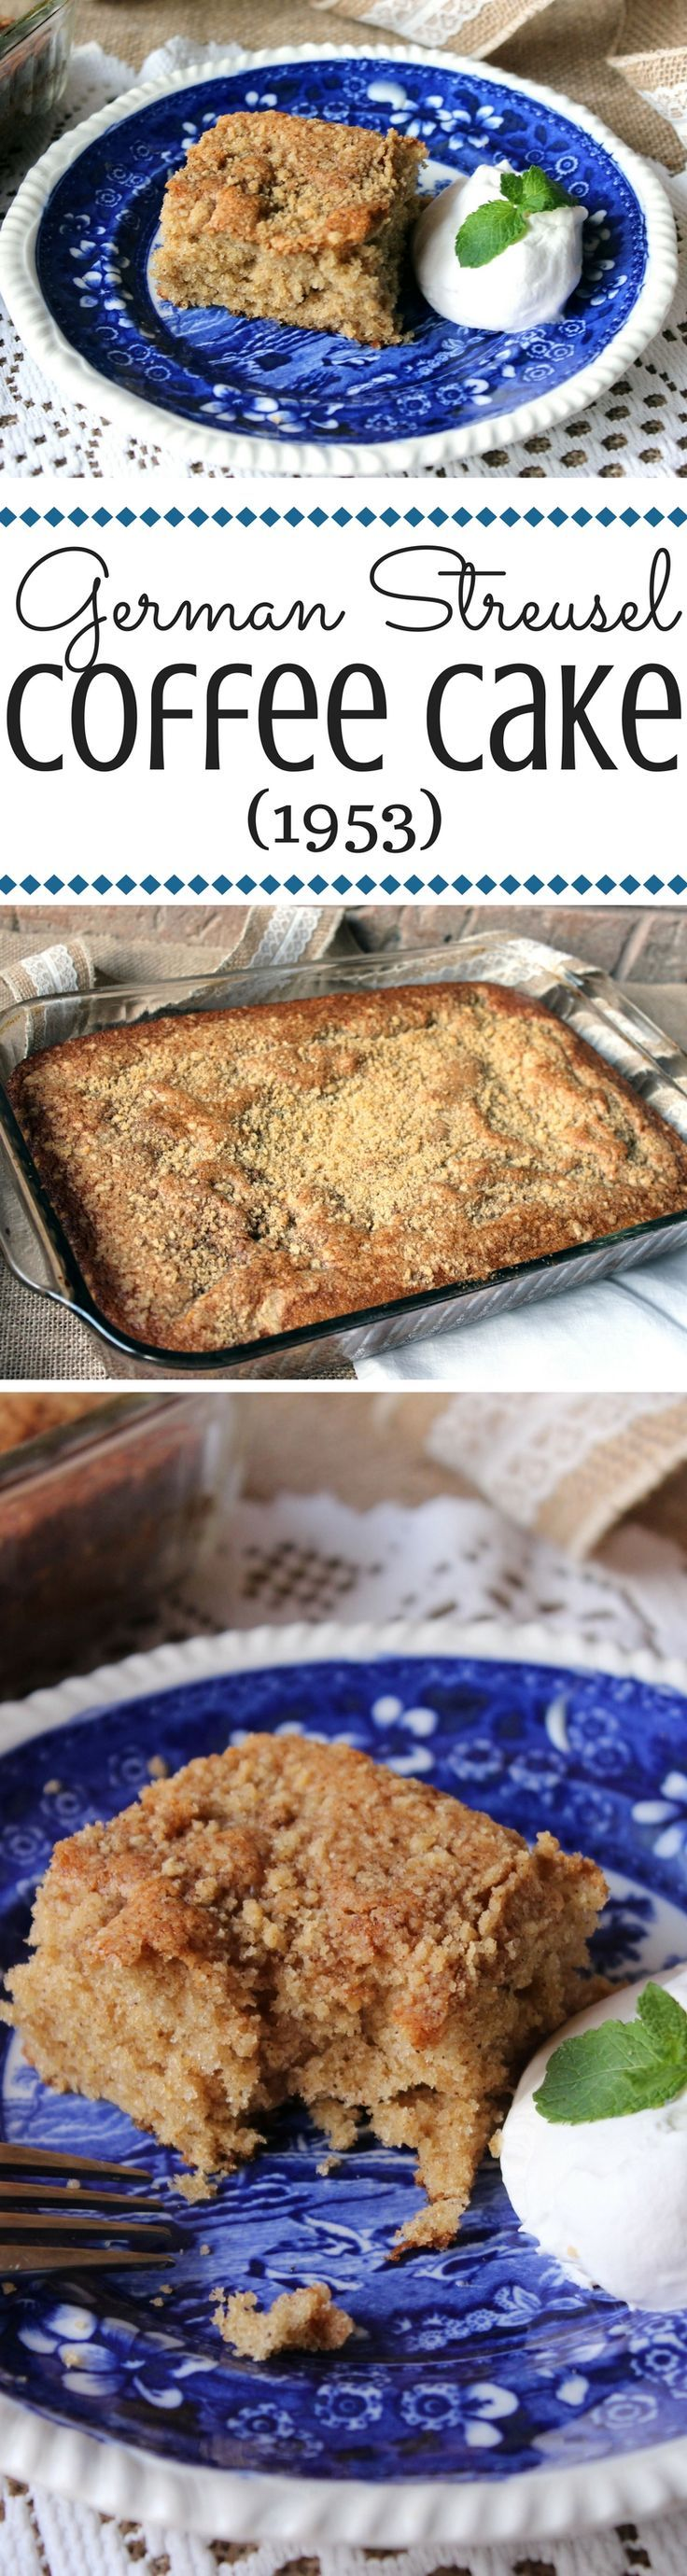 Not overly sweet, just sweet enough, this is the perfect coffee cake! It's a simple, old-fashioned recipe.